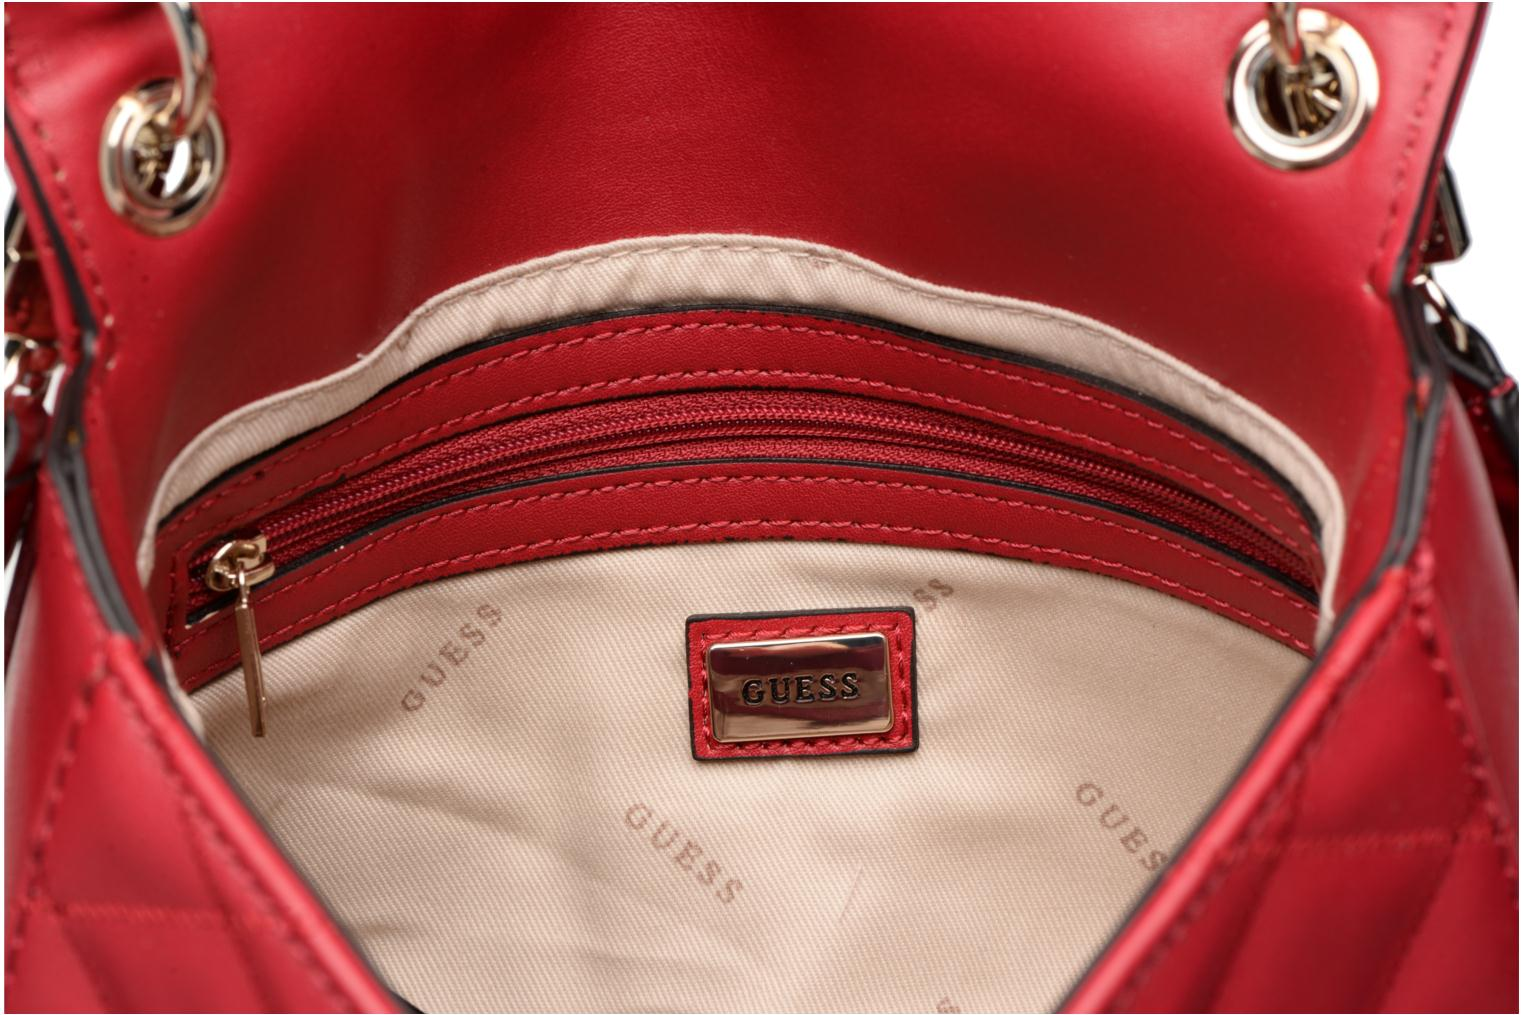 FLAP Guess 26180 TOP HANDLE ALESSIA nTUtTr4